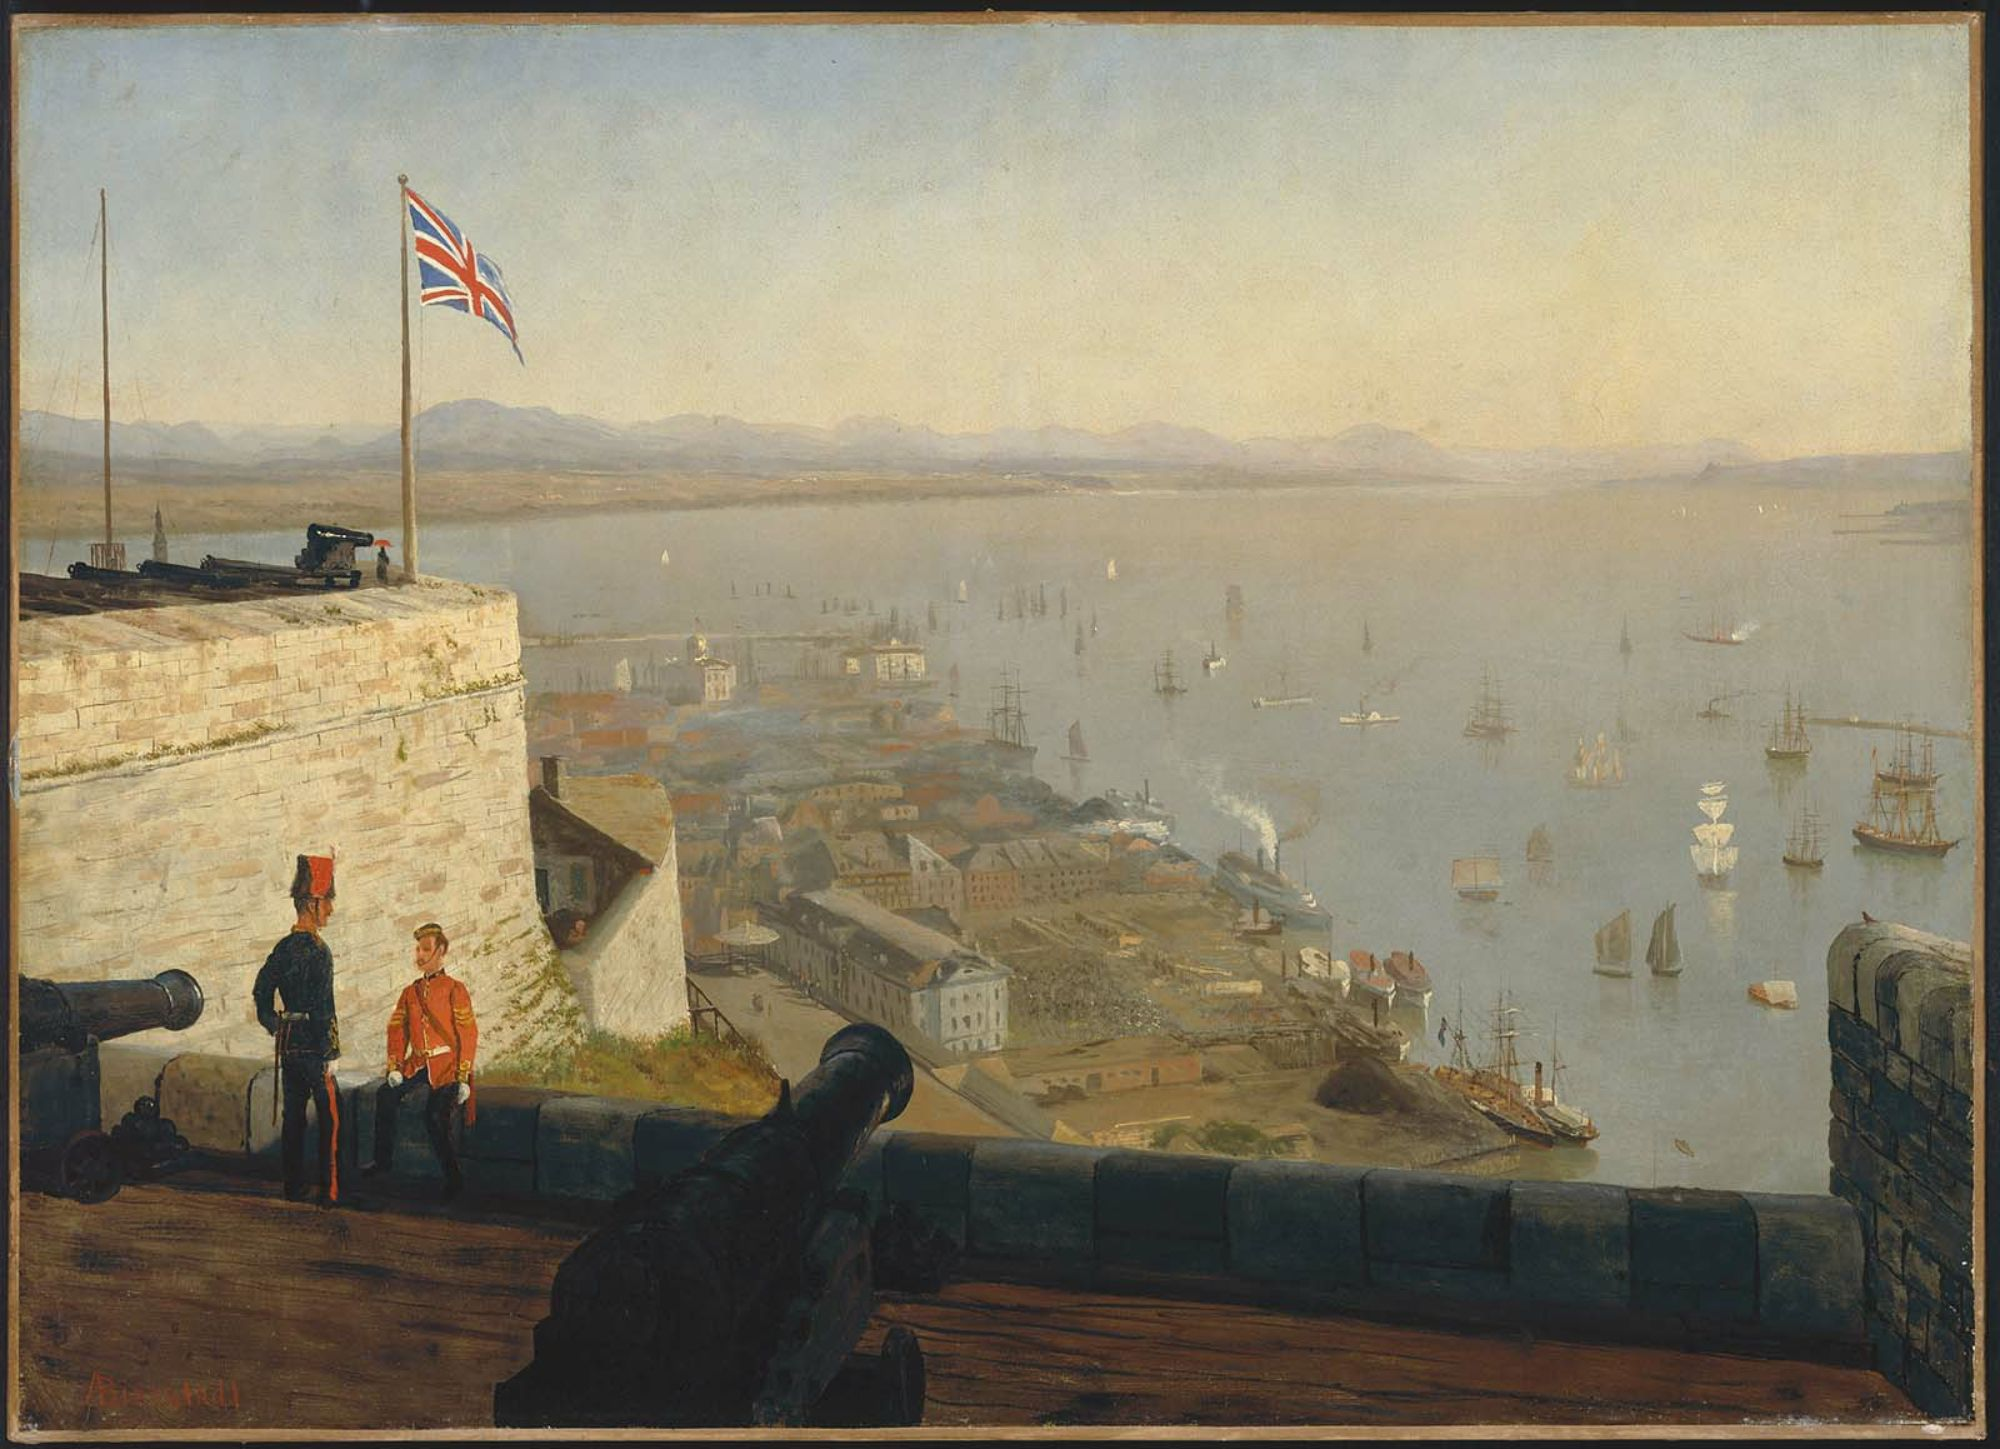 bierstadt - Saint Lawrence River, From The Citadel, Quebec. 1880. Oil on paper mounted on canvas. 56.2 x 77.79 cm (22 1-8 x 30 5-8 in.). Museum of Fine Arts, Boston MA